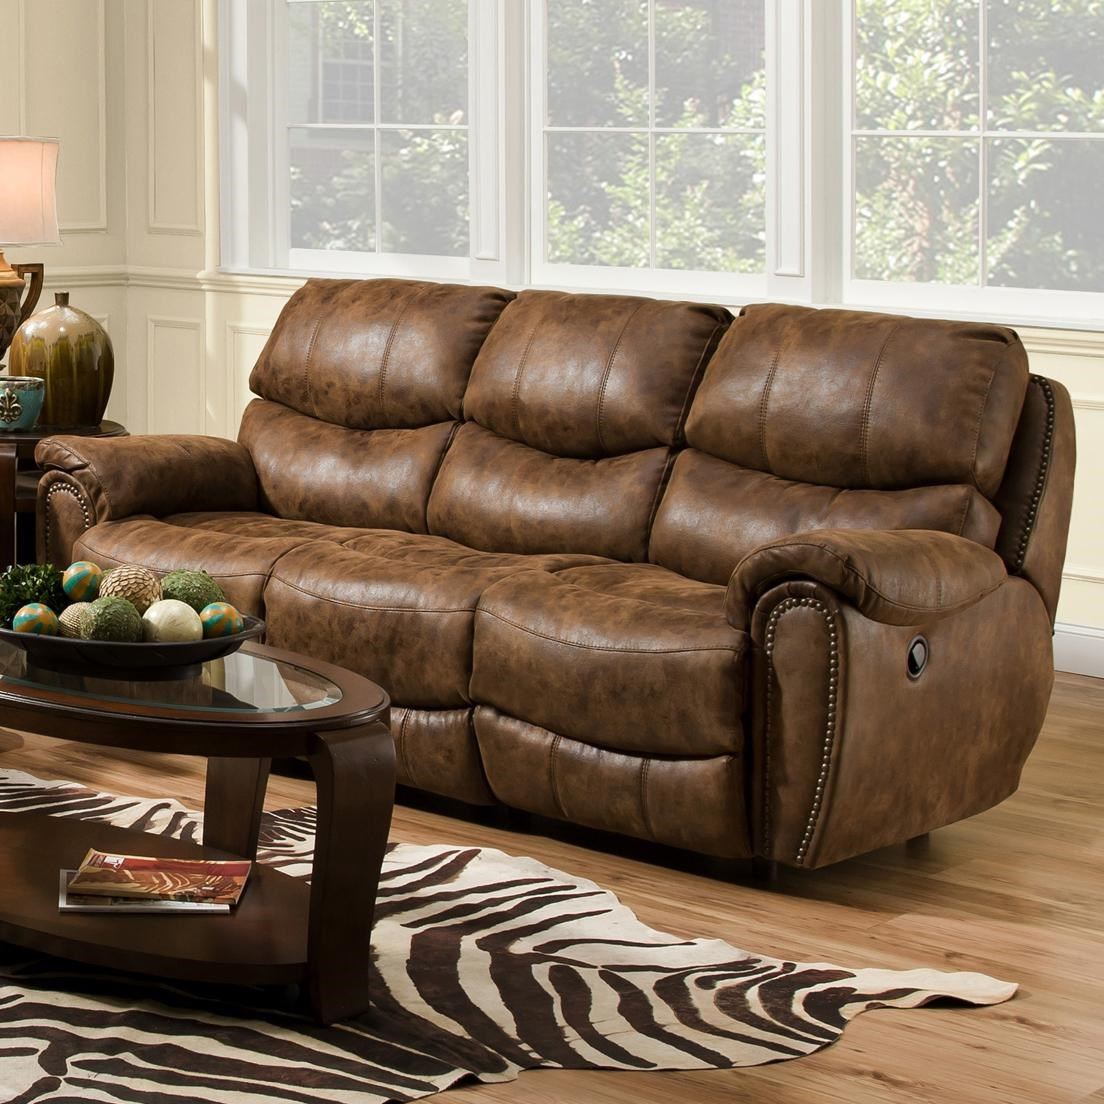 Home > Living Room Furniture > Reclining Sofa > Franklin Richmond ...